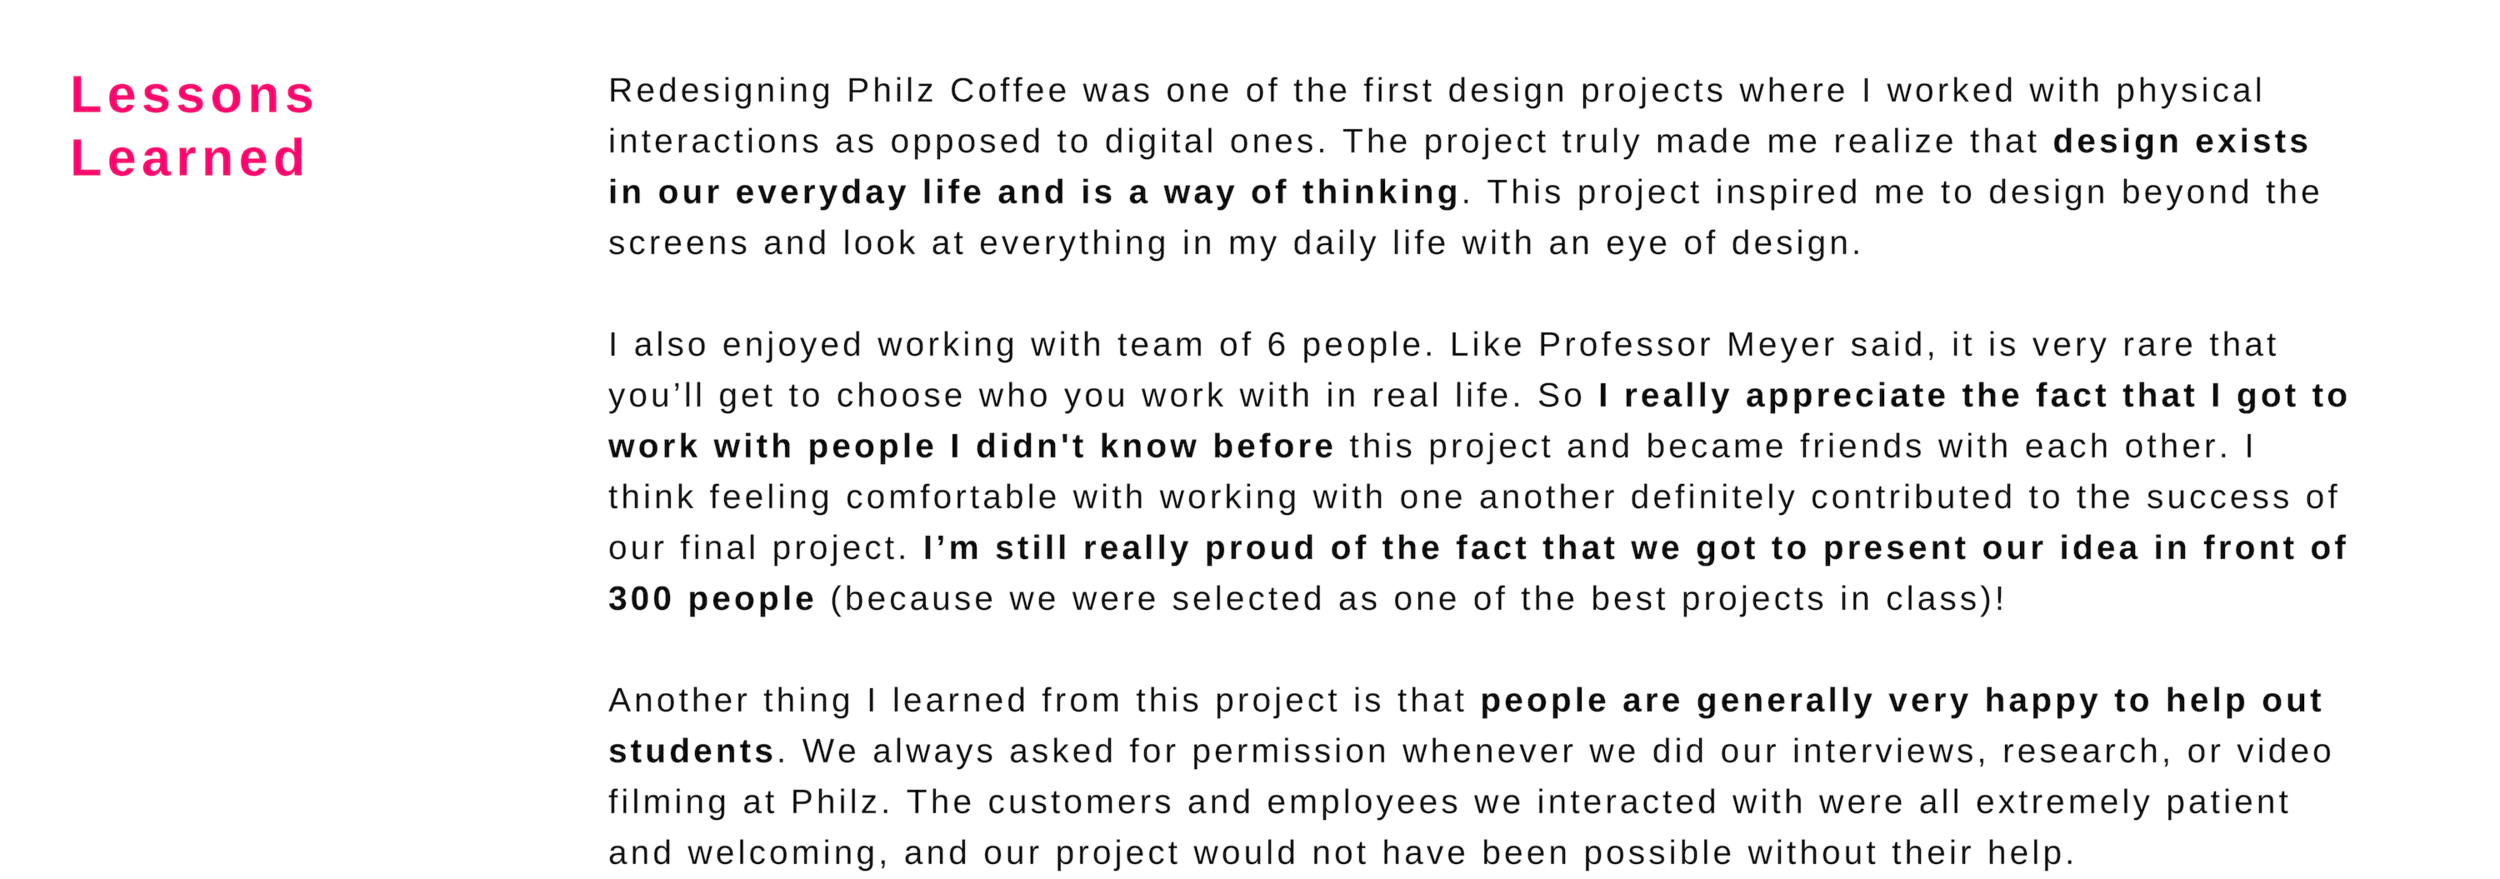 PHILZ lessons learned.png